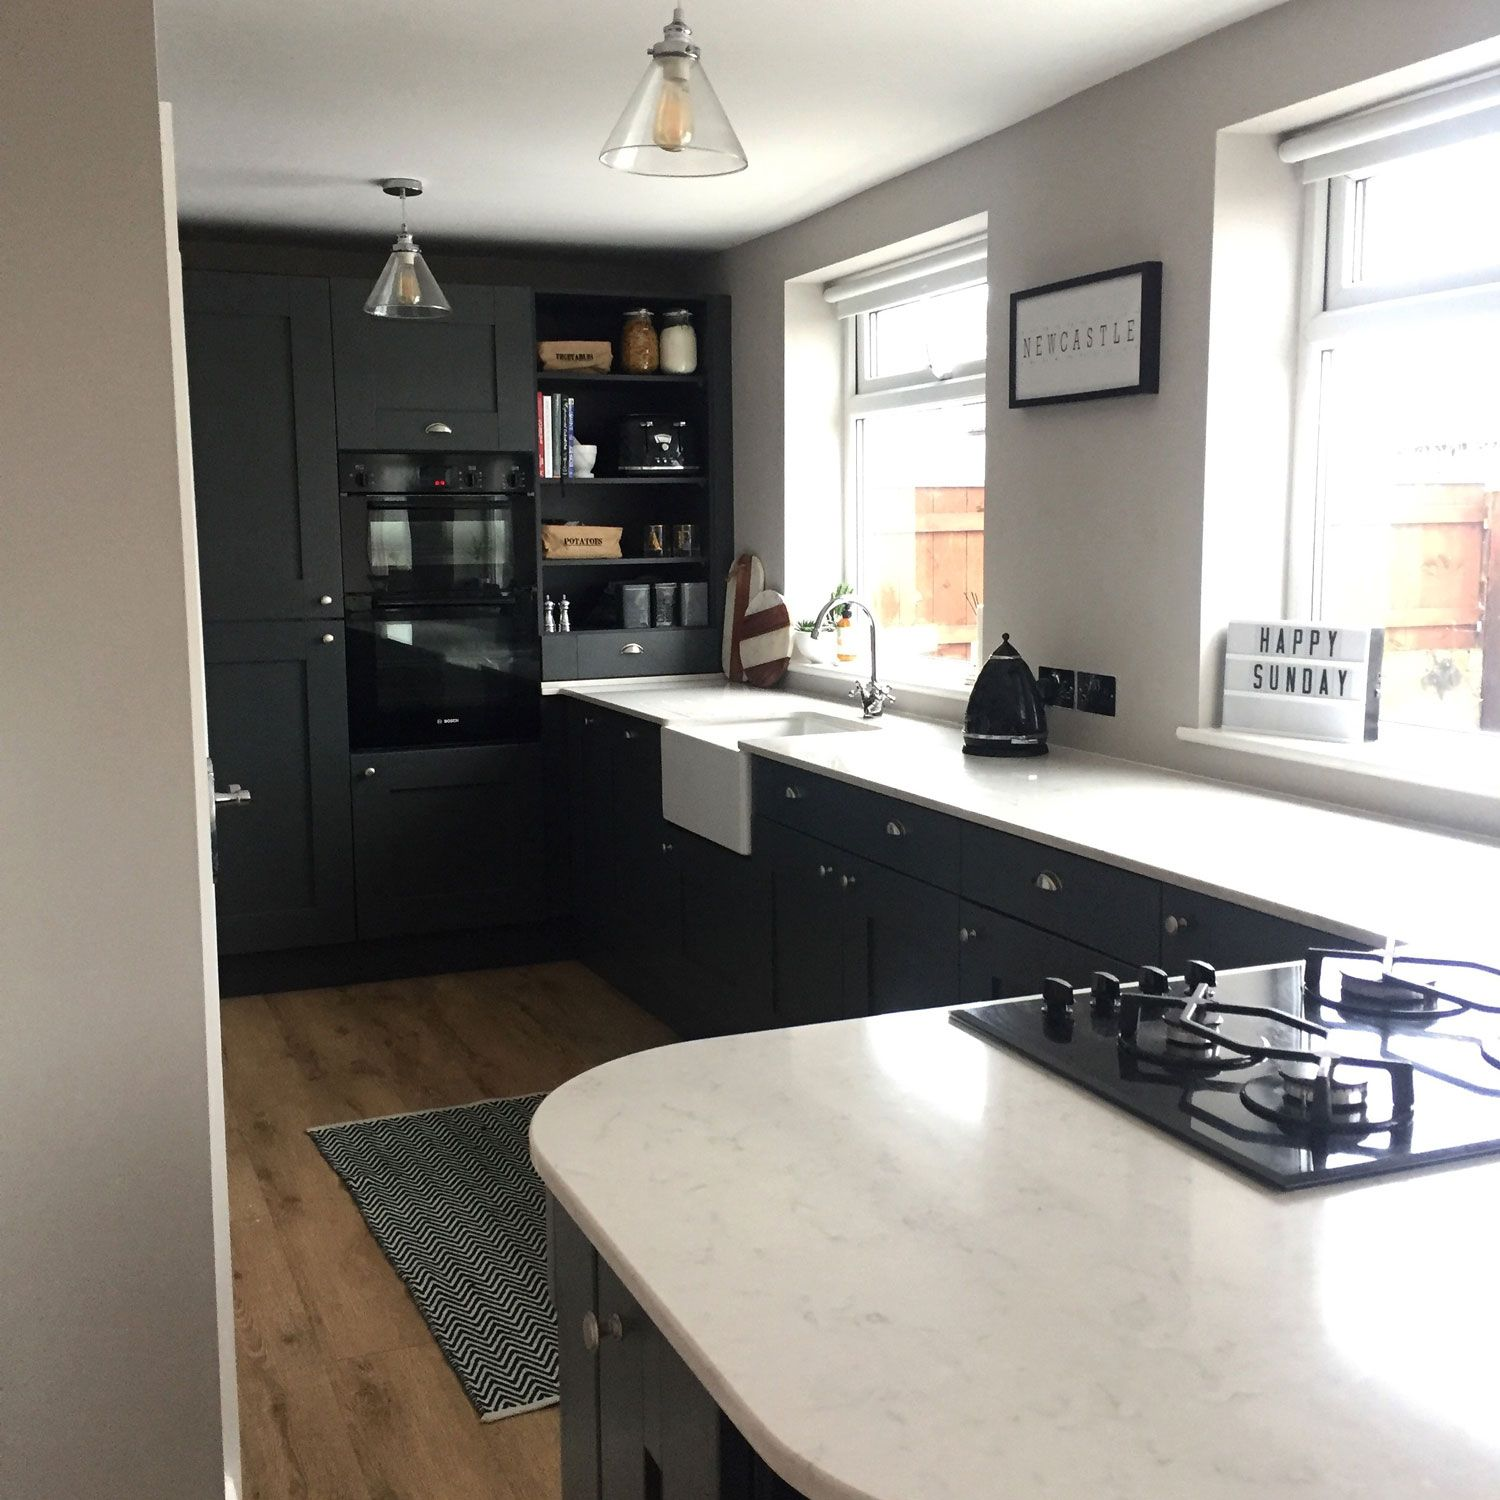 Cheap Kitchen renovation from DIY Kitchens. How much did ...